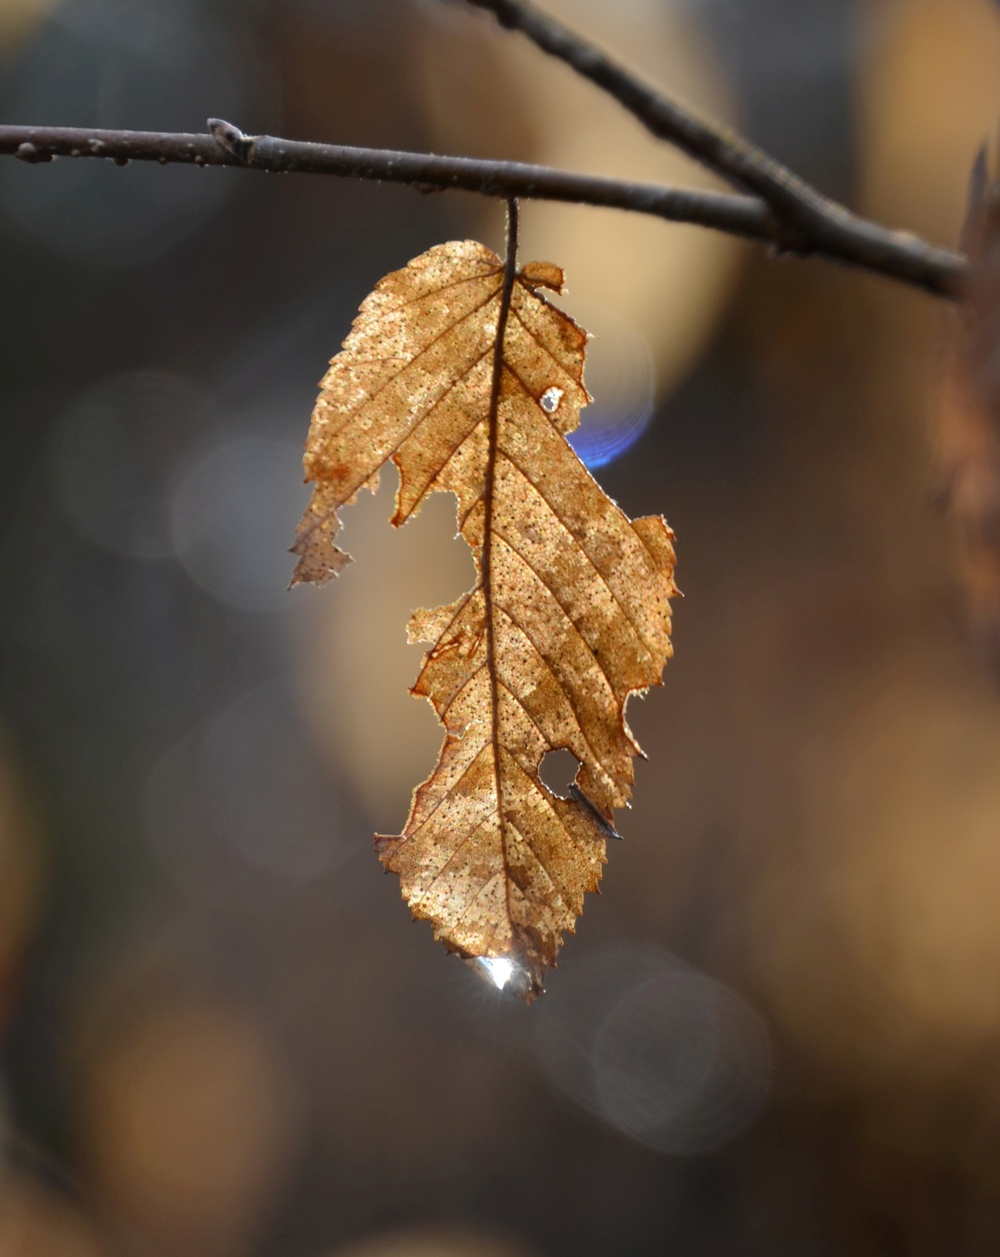 Georgia_Elijay_Sunkissed Leaf_2012.JPG